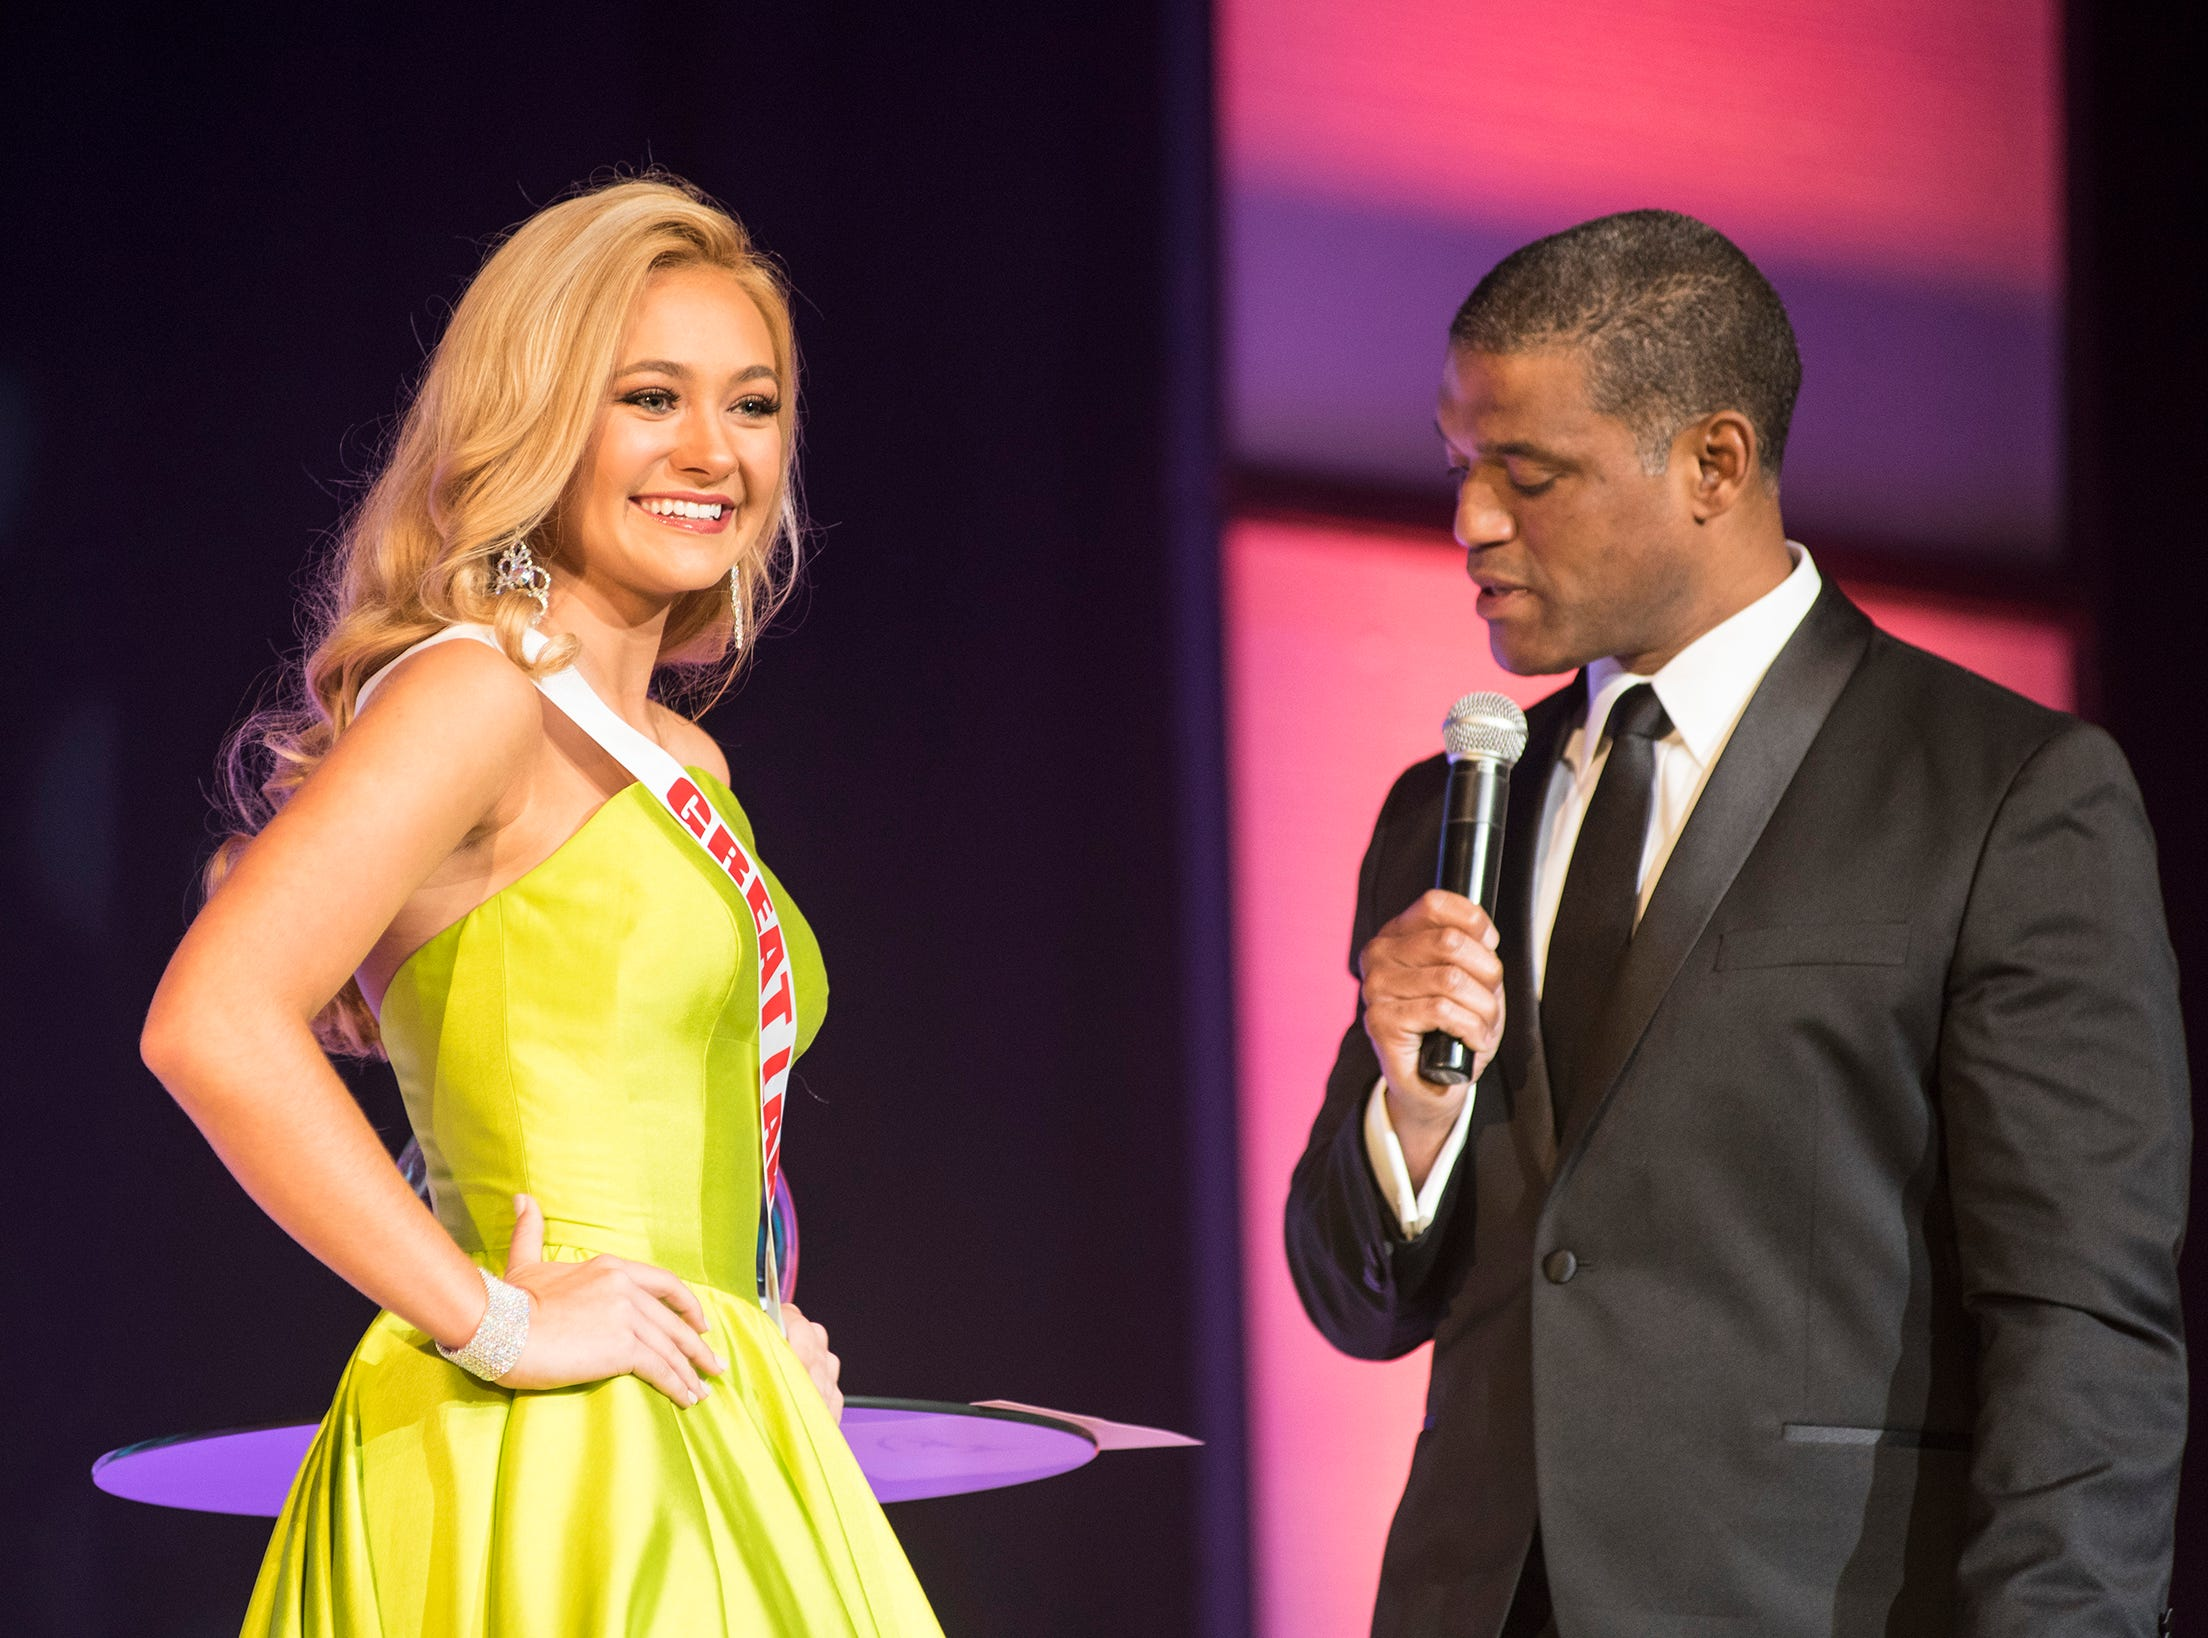 Miss Great Lakes Teen Rebecca Larsen, left, is questioned by Cincinnati TV personality Rob Williams Saturday, Sept. 22, 2018 during the final round of the Miss Michigan Teen USA pageant at McMorran Theater.